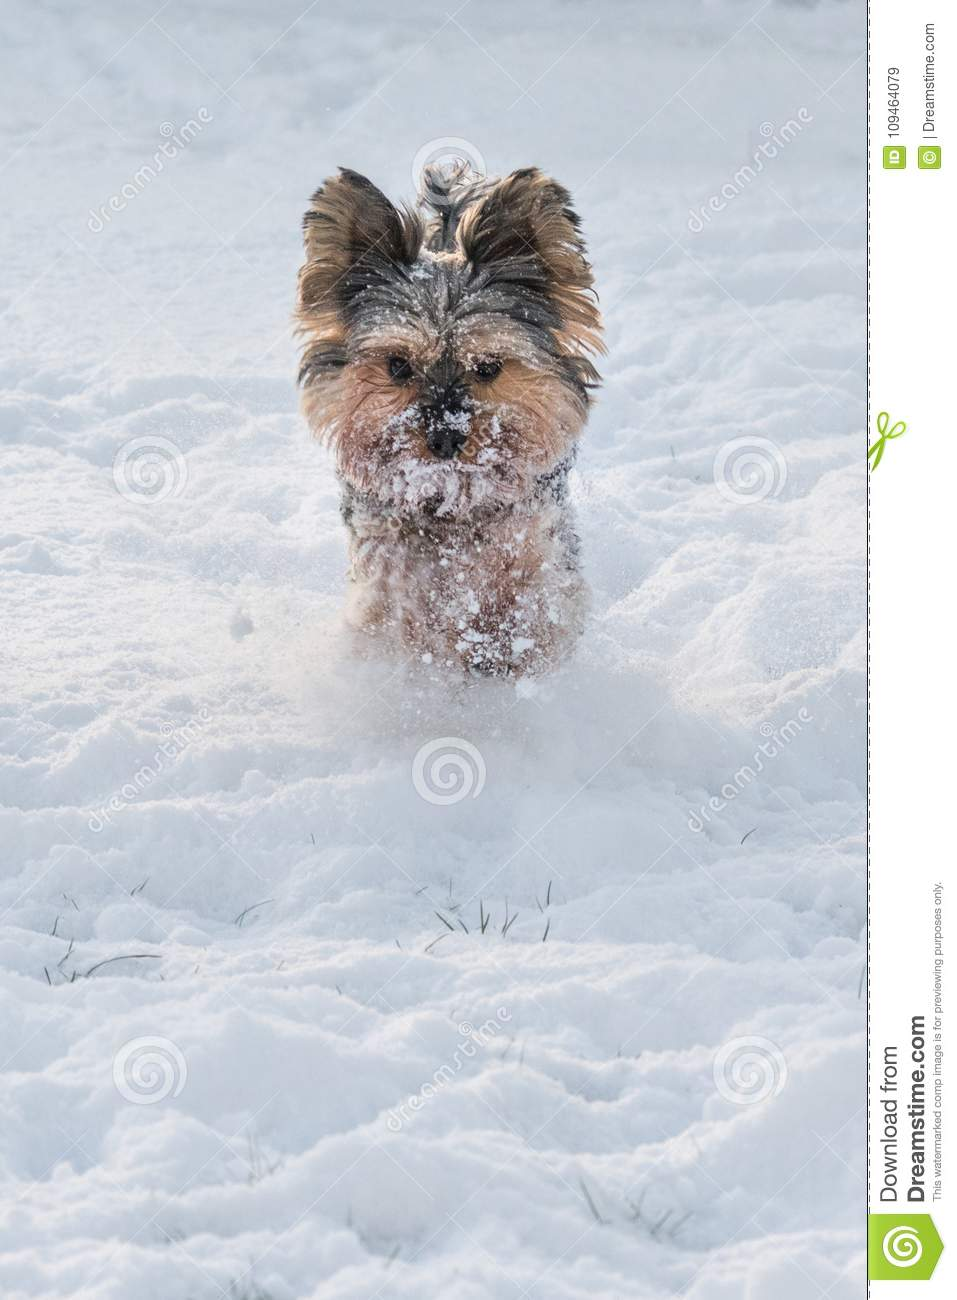 Yorkshire Terrier Running In The Snow Stock Image Image Of Yorkie